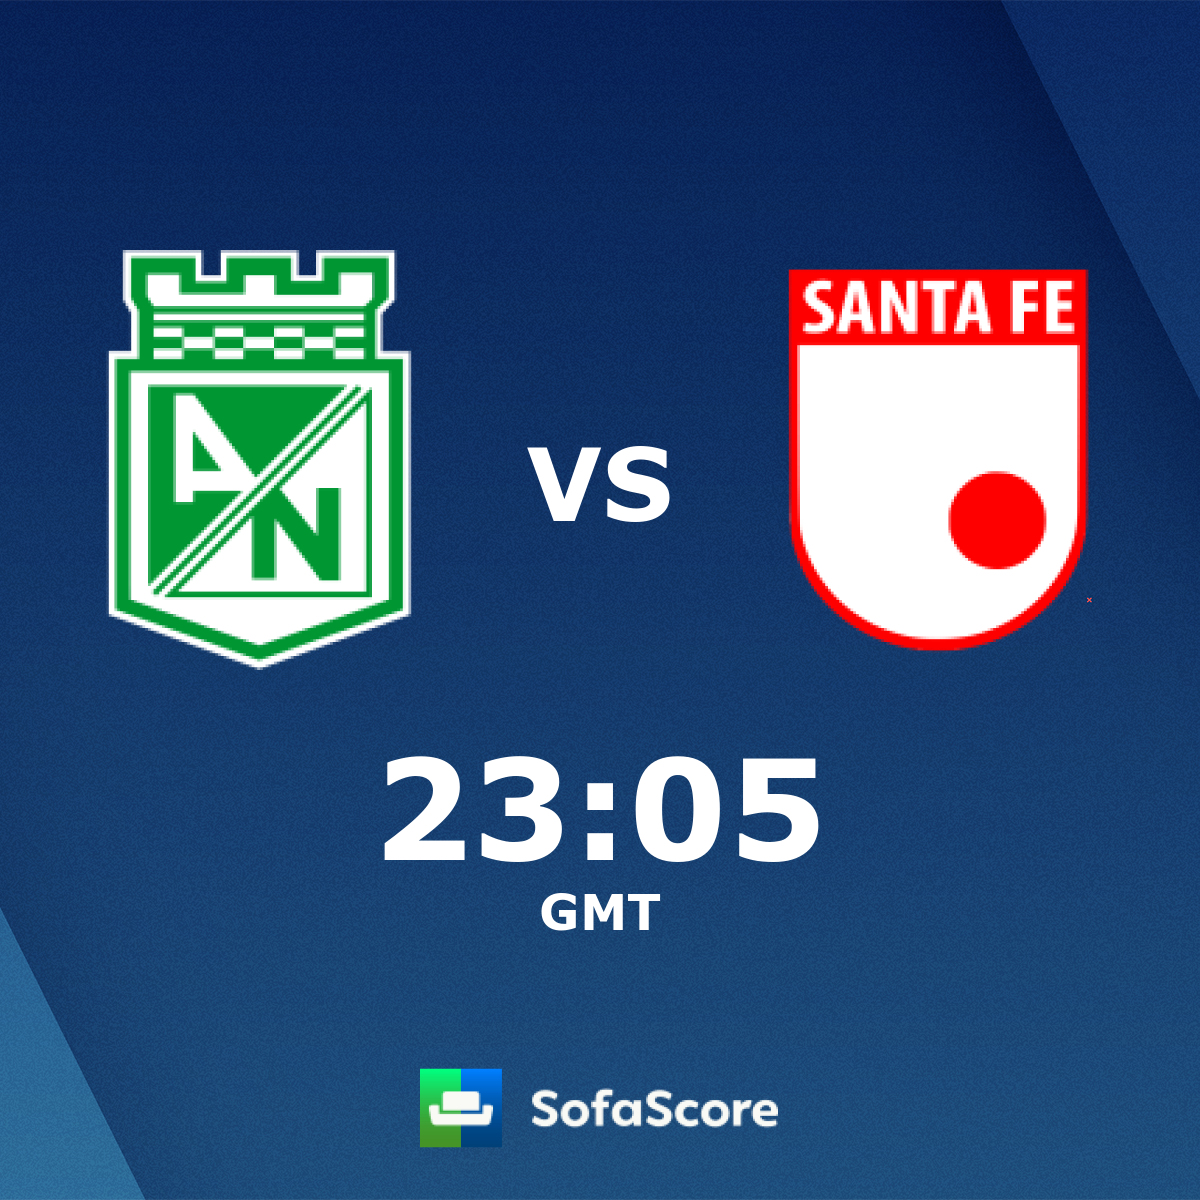 Atletico nacional vs santa fe en vivo win sports betting betting lines ncaa first round